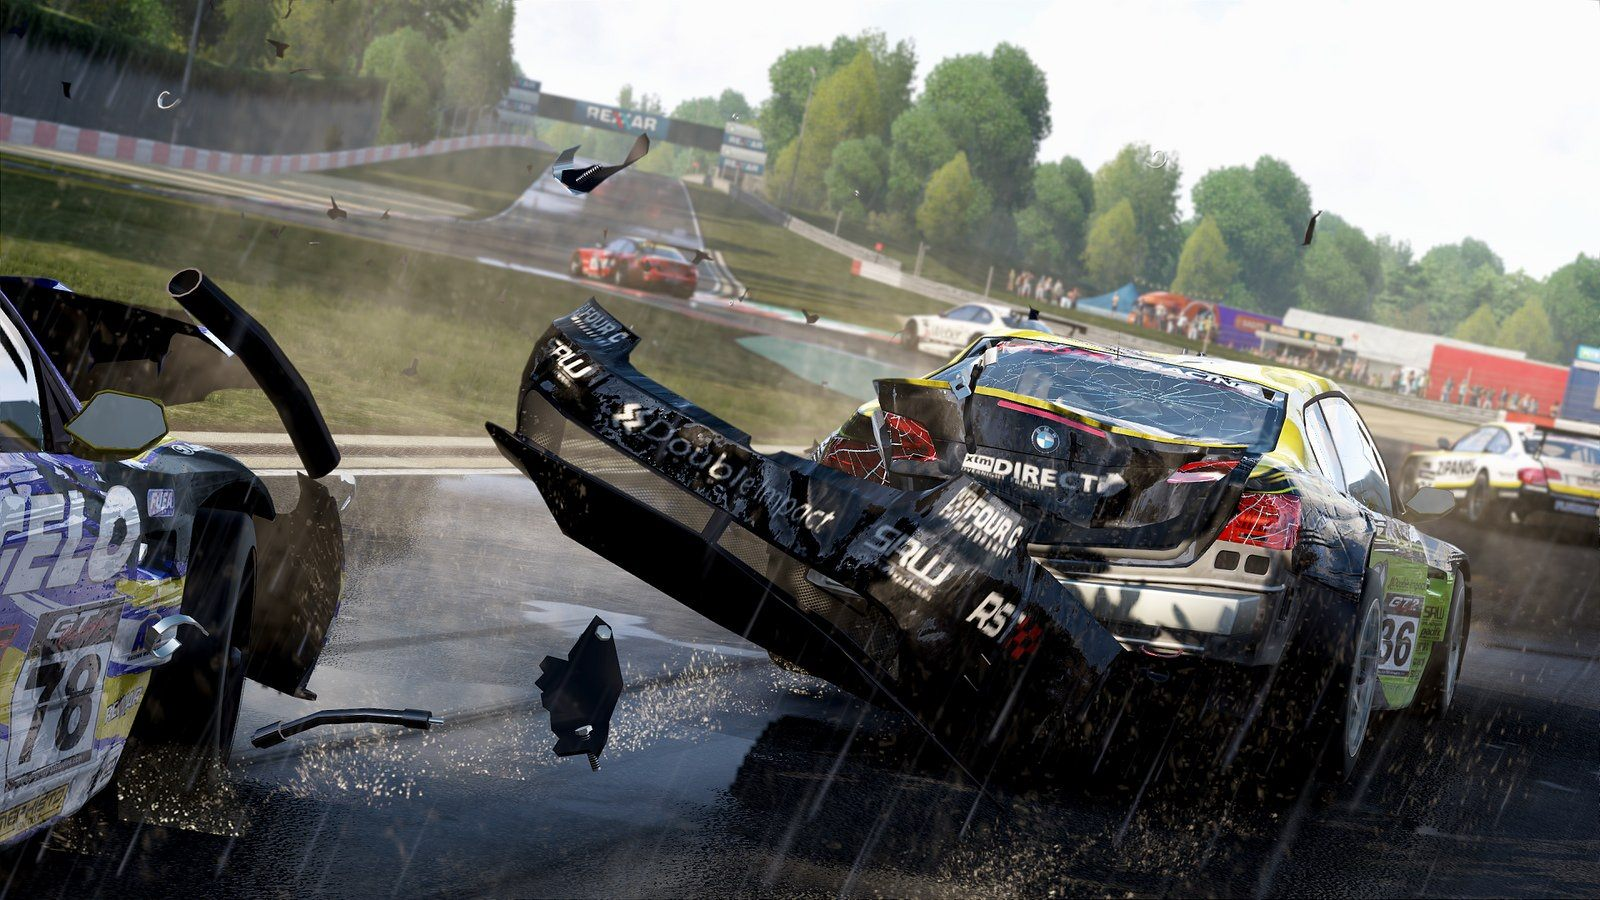 Project CARS image #3